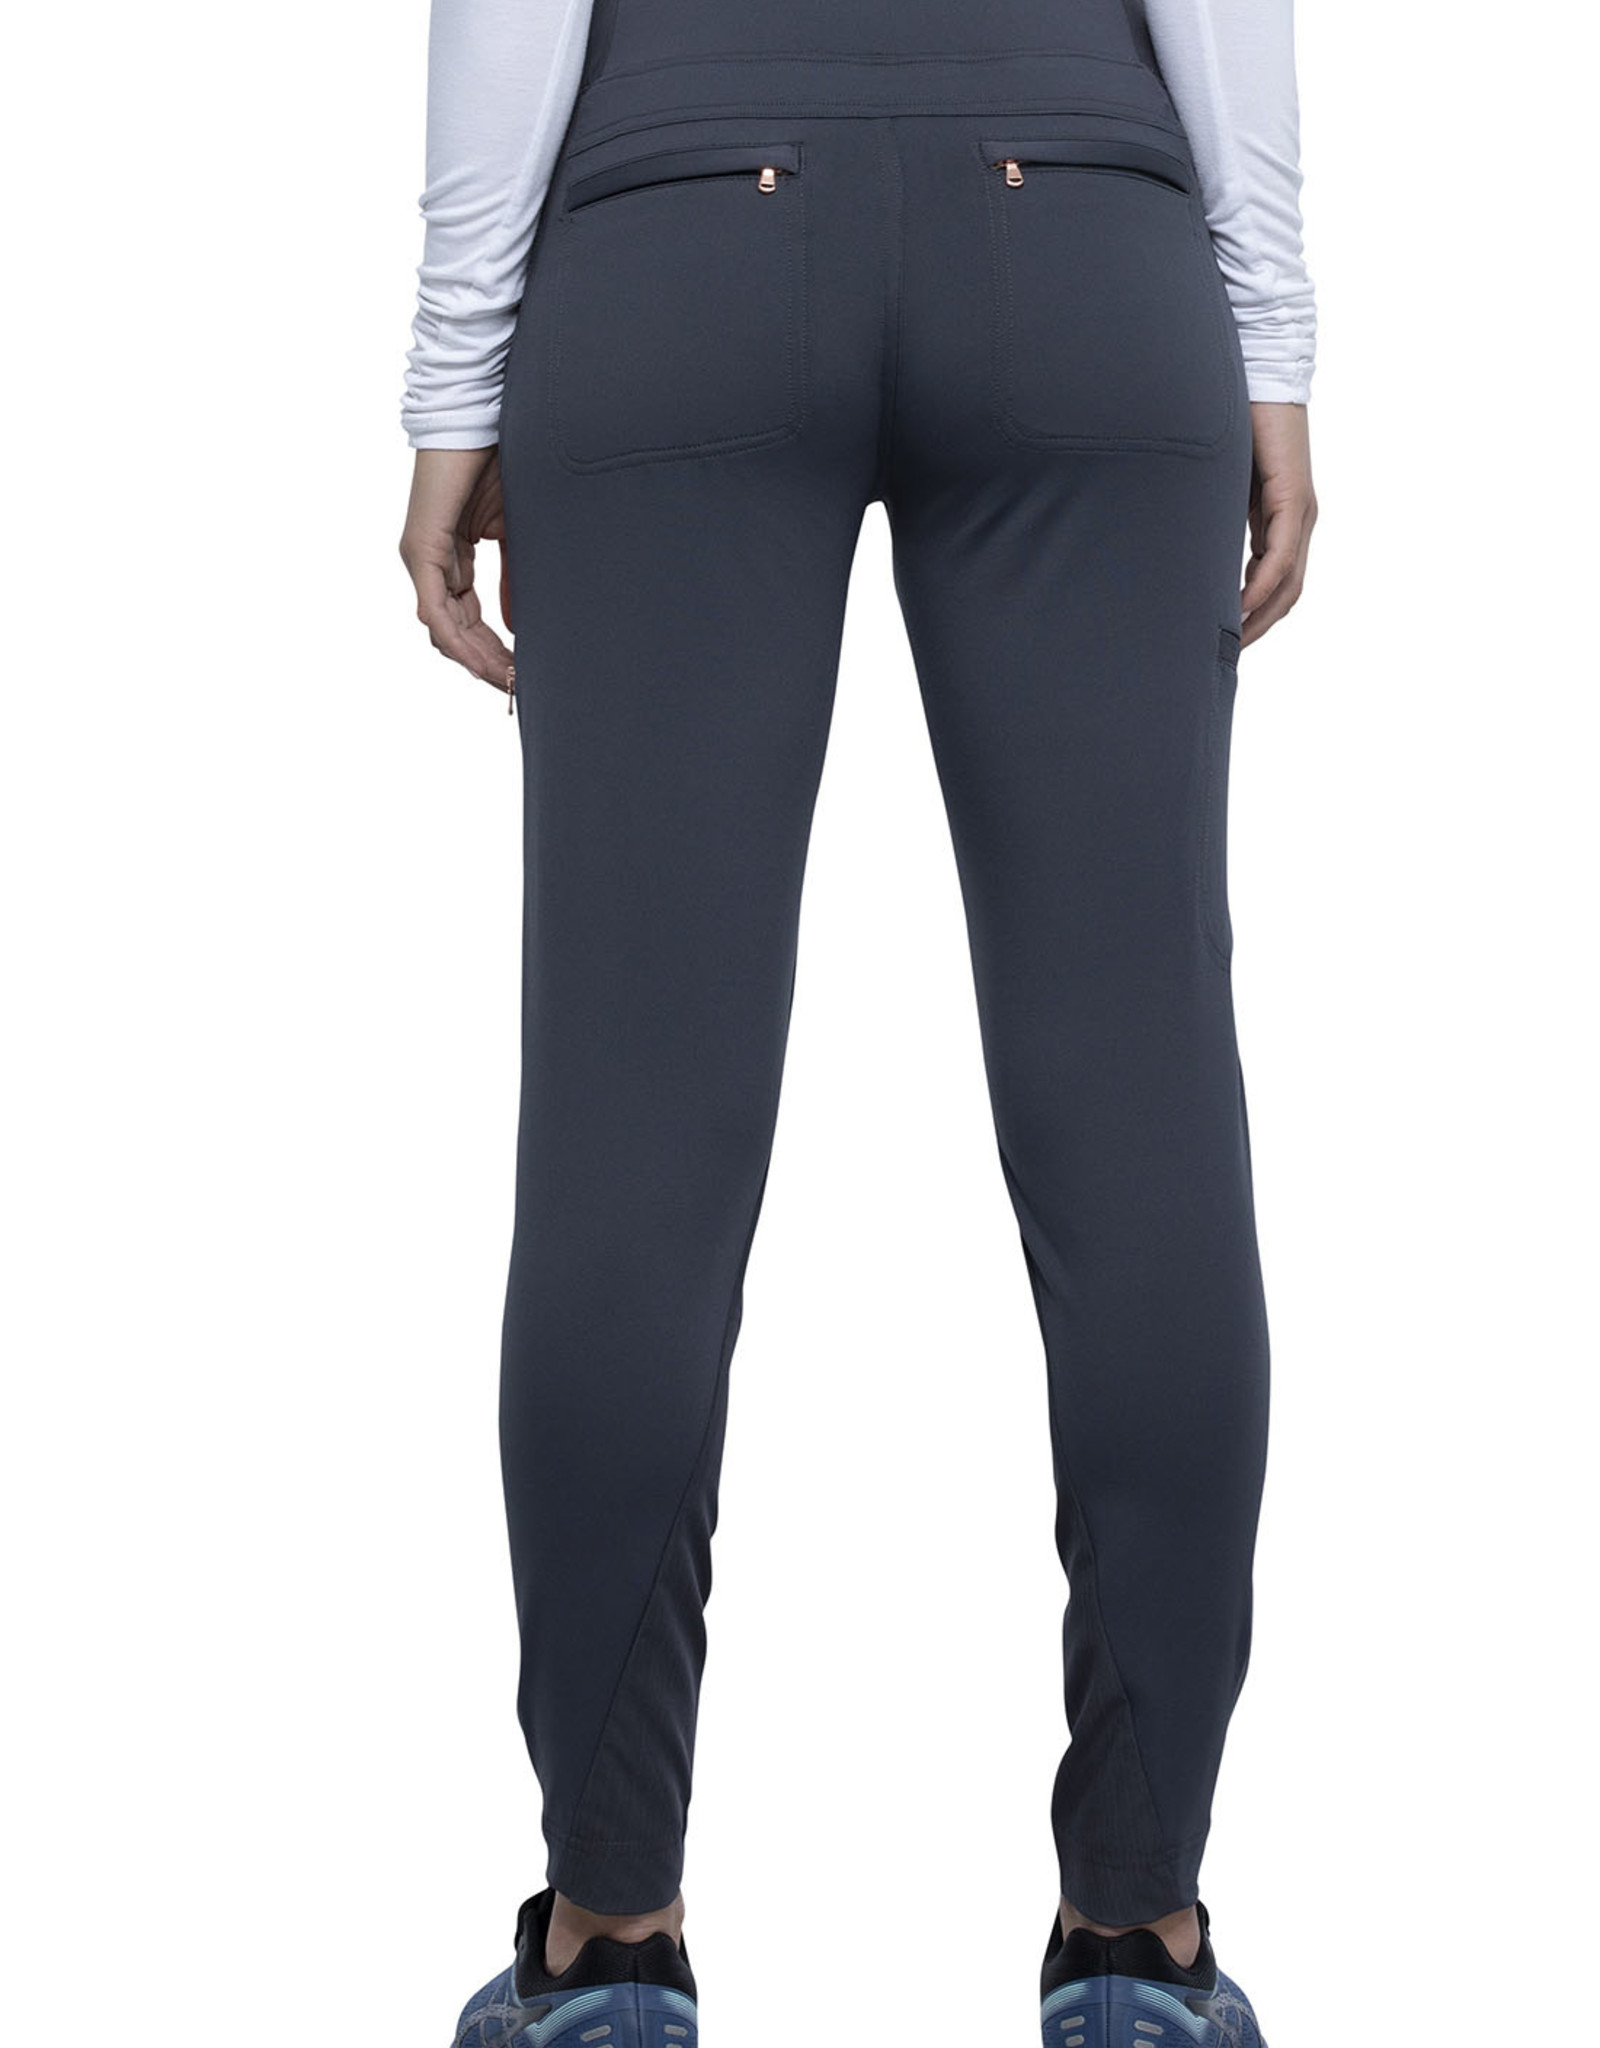 Statement Mid-Rise Tapered Leg Pull-on Pant